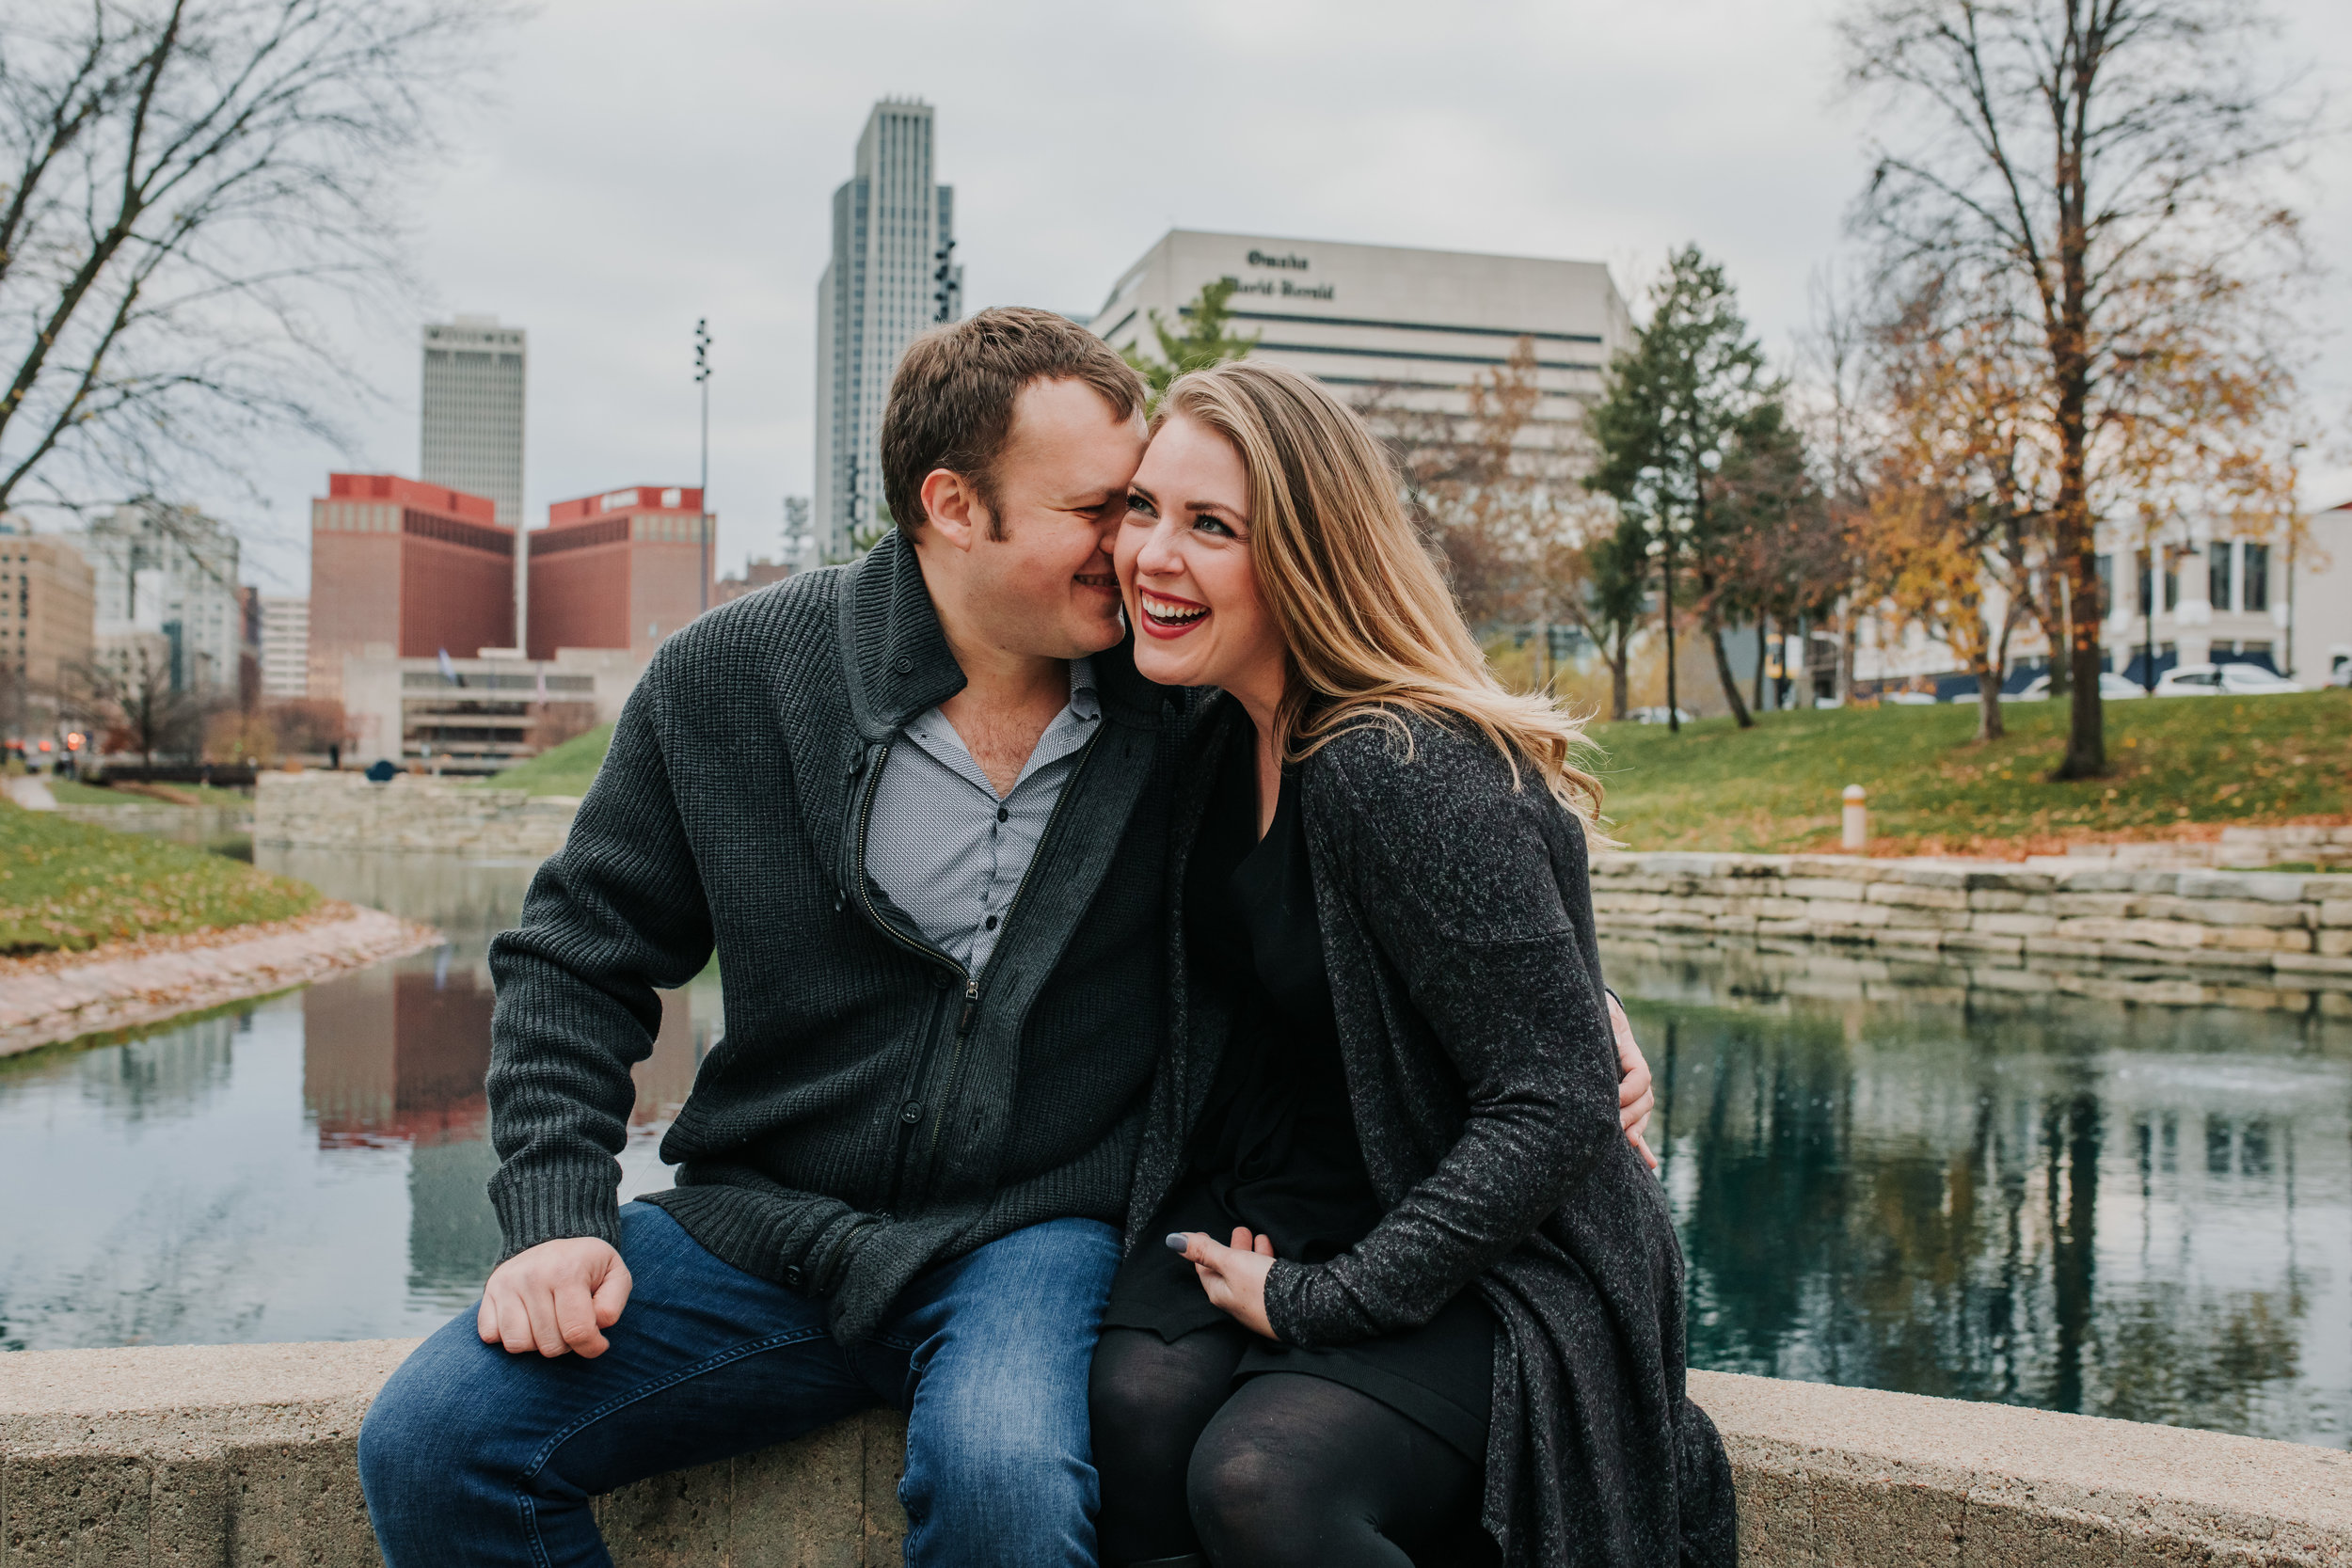 Meghan & Igor - Engaged - Nathaniel Jensen Photography - Omaha Nebraska Wedding Photograper-96.jpg